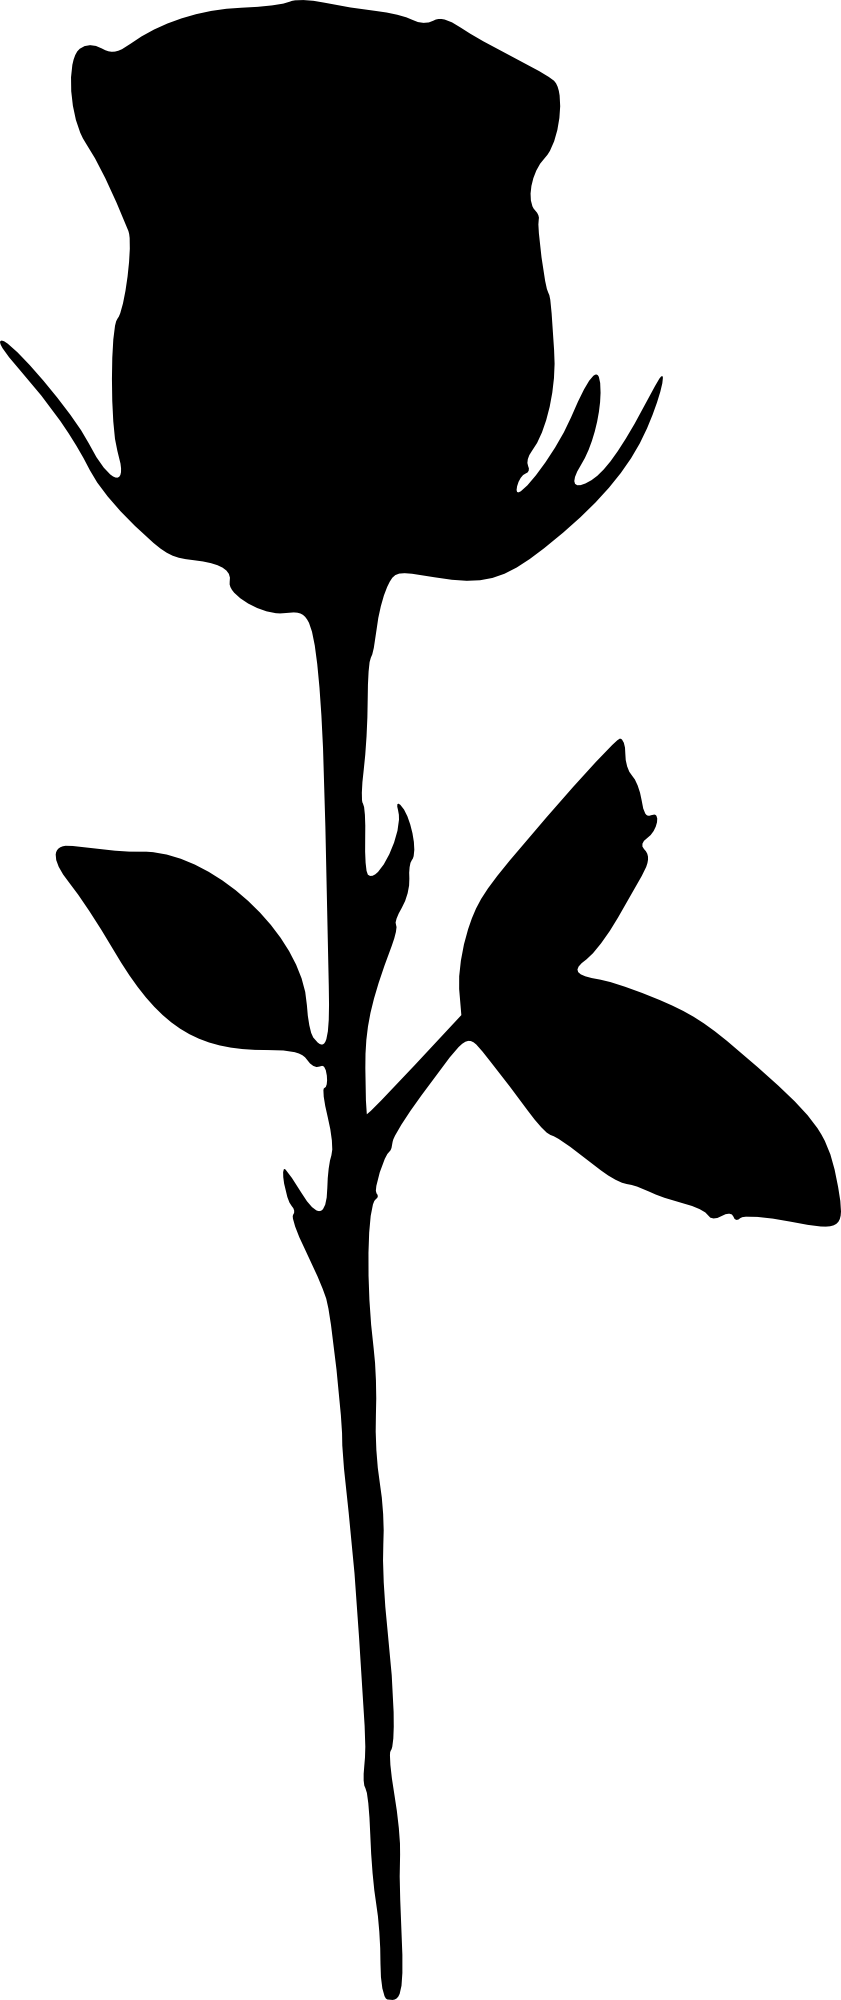 Flower stem black and white clipart svg free library Silhouette Black and white Clip art - rose outline 841*2000 ... svg free library